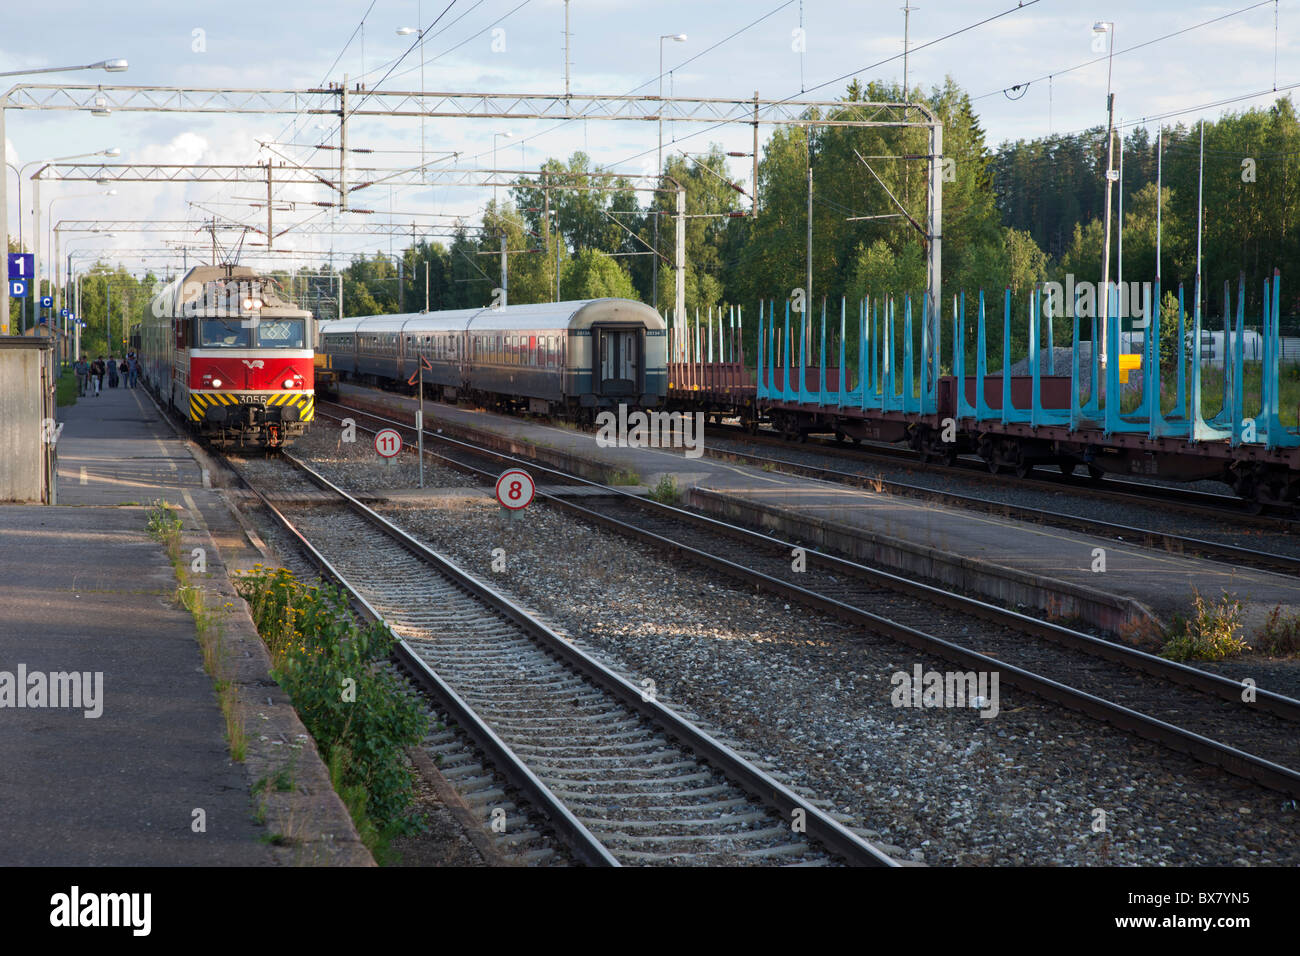 Railway station where Intercity passenger trains are passing each other , Finland Stock Photo